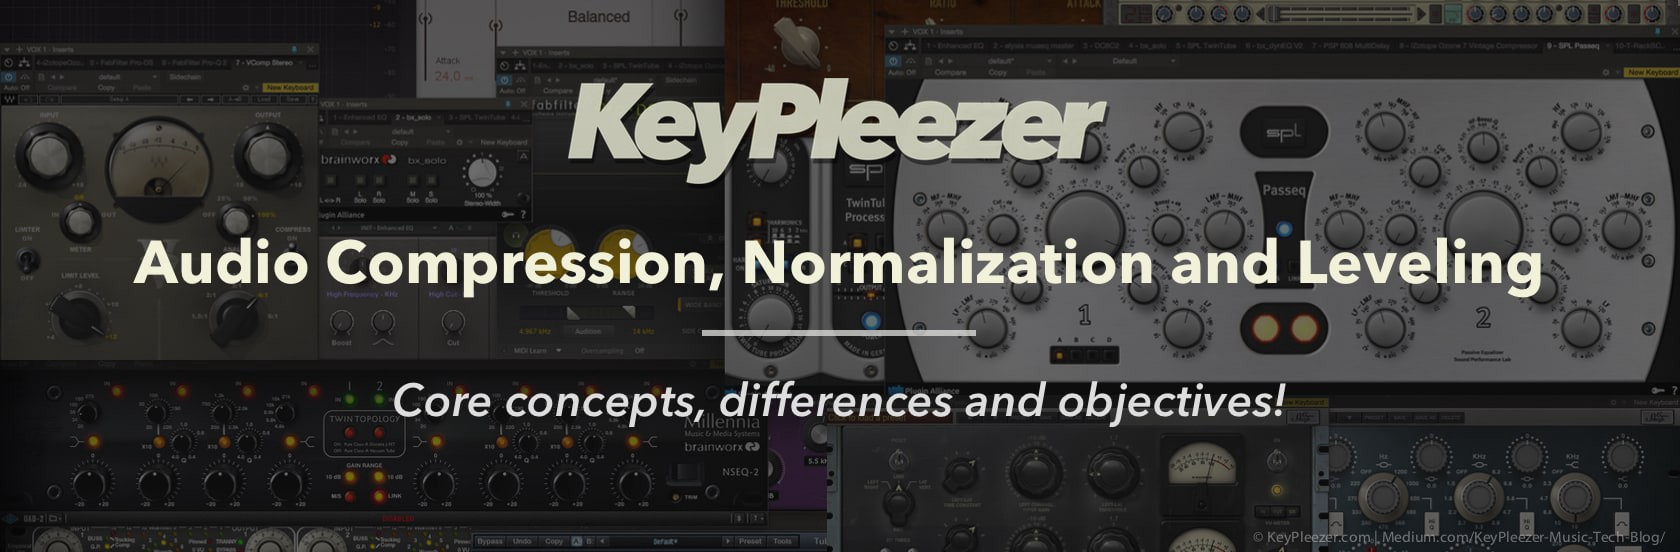 Audio compression vs  normalization and leveling